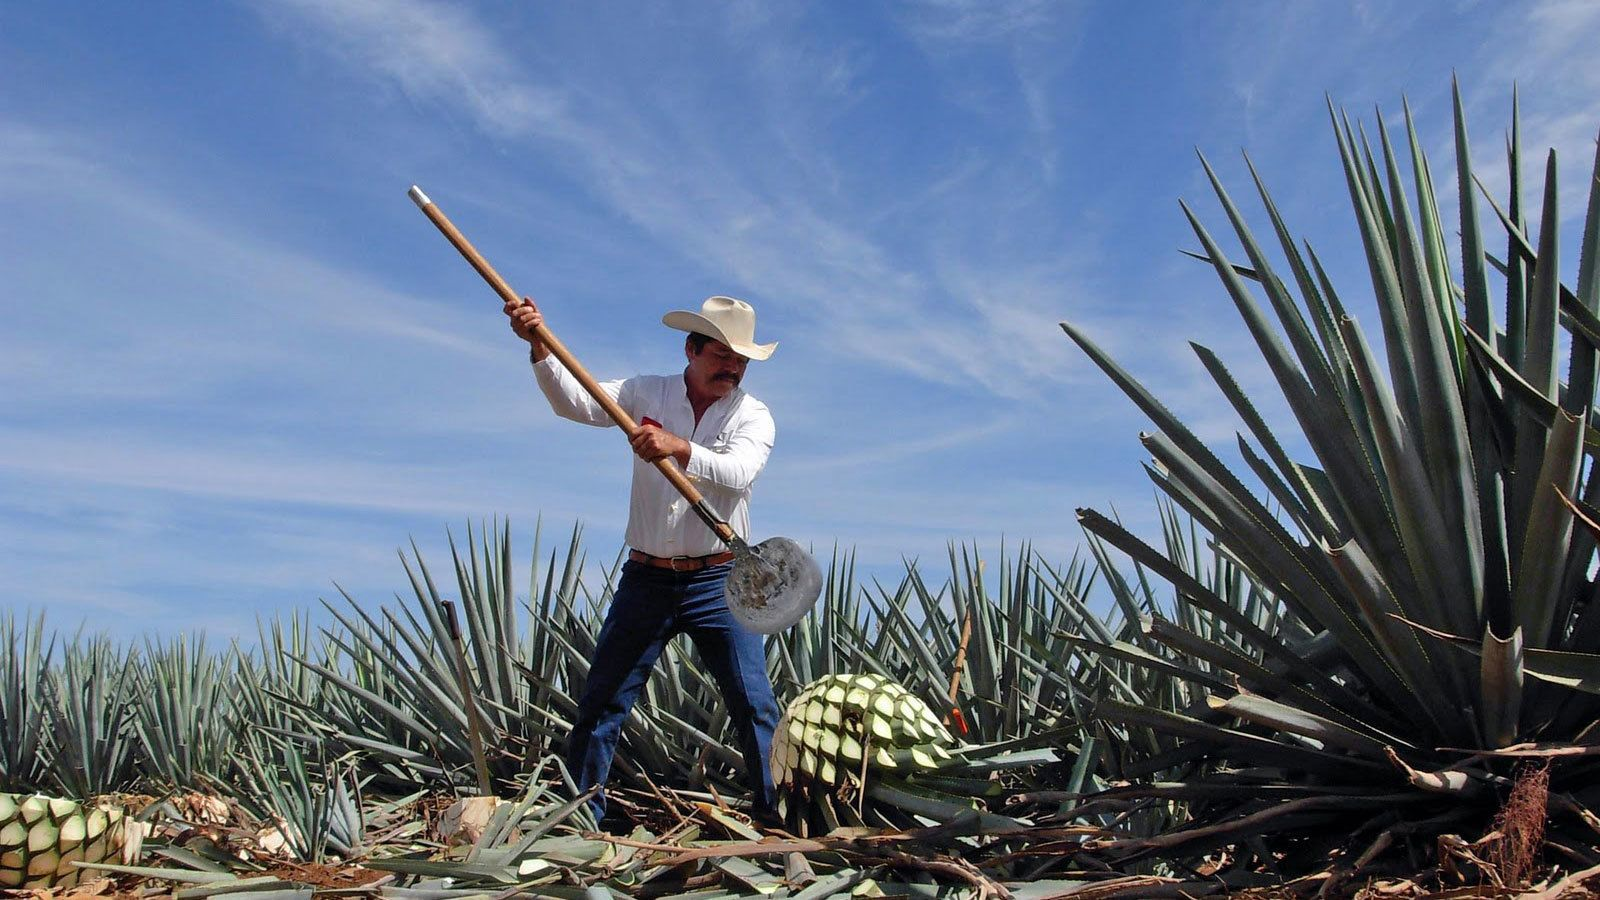 Man harvesting agave in a field